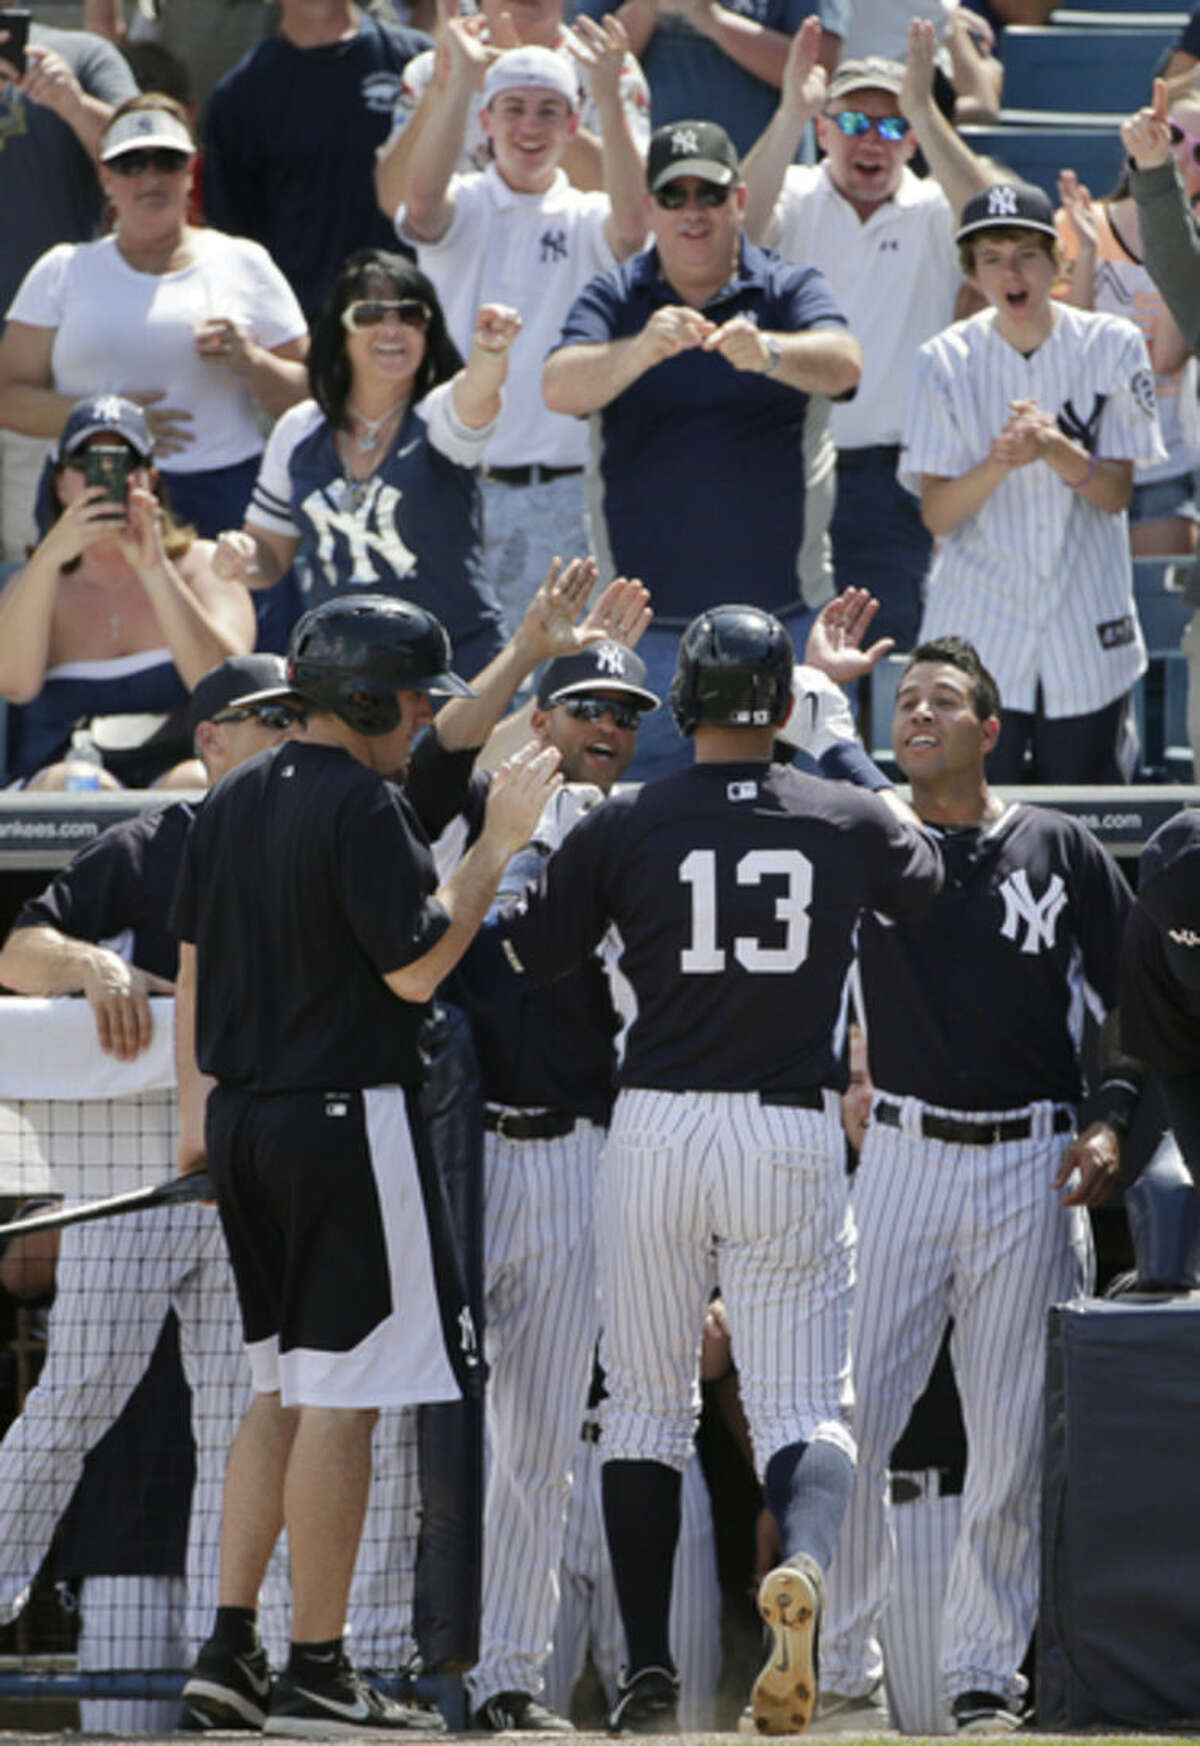 Fans applaud in the stands as New York Yankees manager Joe Girardi, far left, and teammates greet New York Yankees' Alex Rodriguez (13) at the dugout steps after Rodriguez hit his first home run of spring training, a solo blast off Boston Red Sox starting pitcher Brandon Workman, during the fourth inning of a spring baseball game in Tampa, Fla., Wednesday, March 11, 2015. (AP Photo/Kathy Willens)